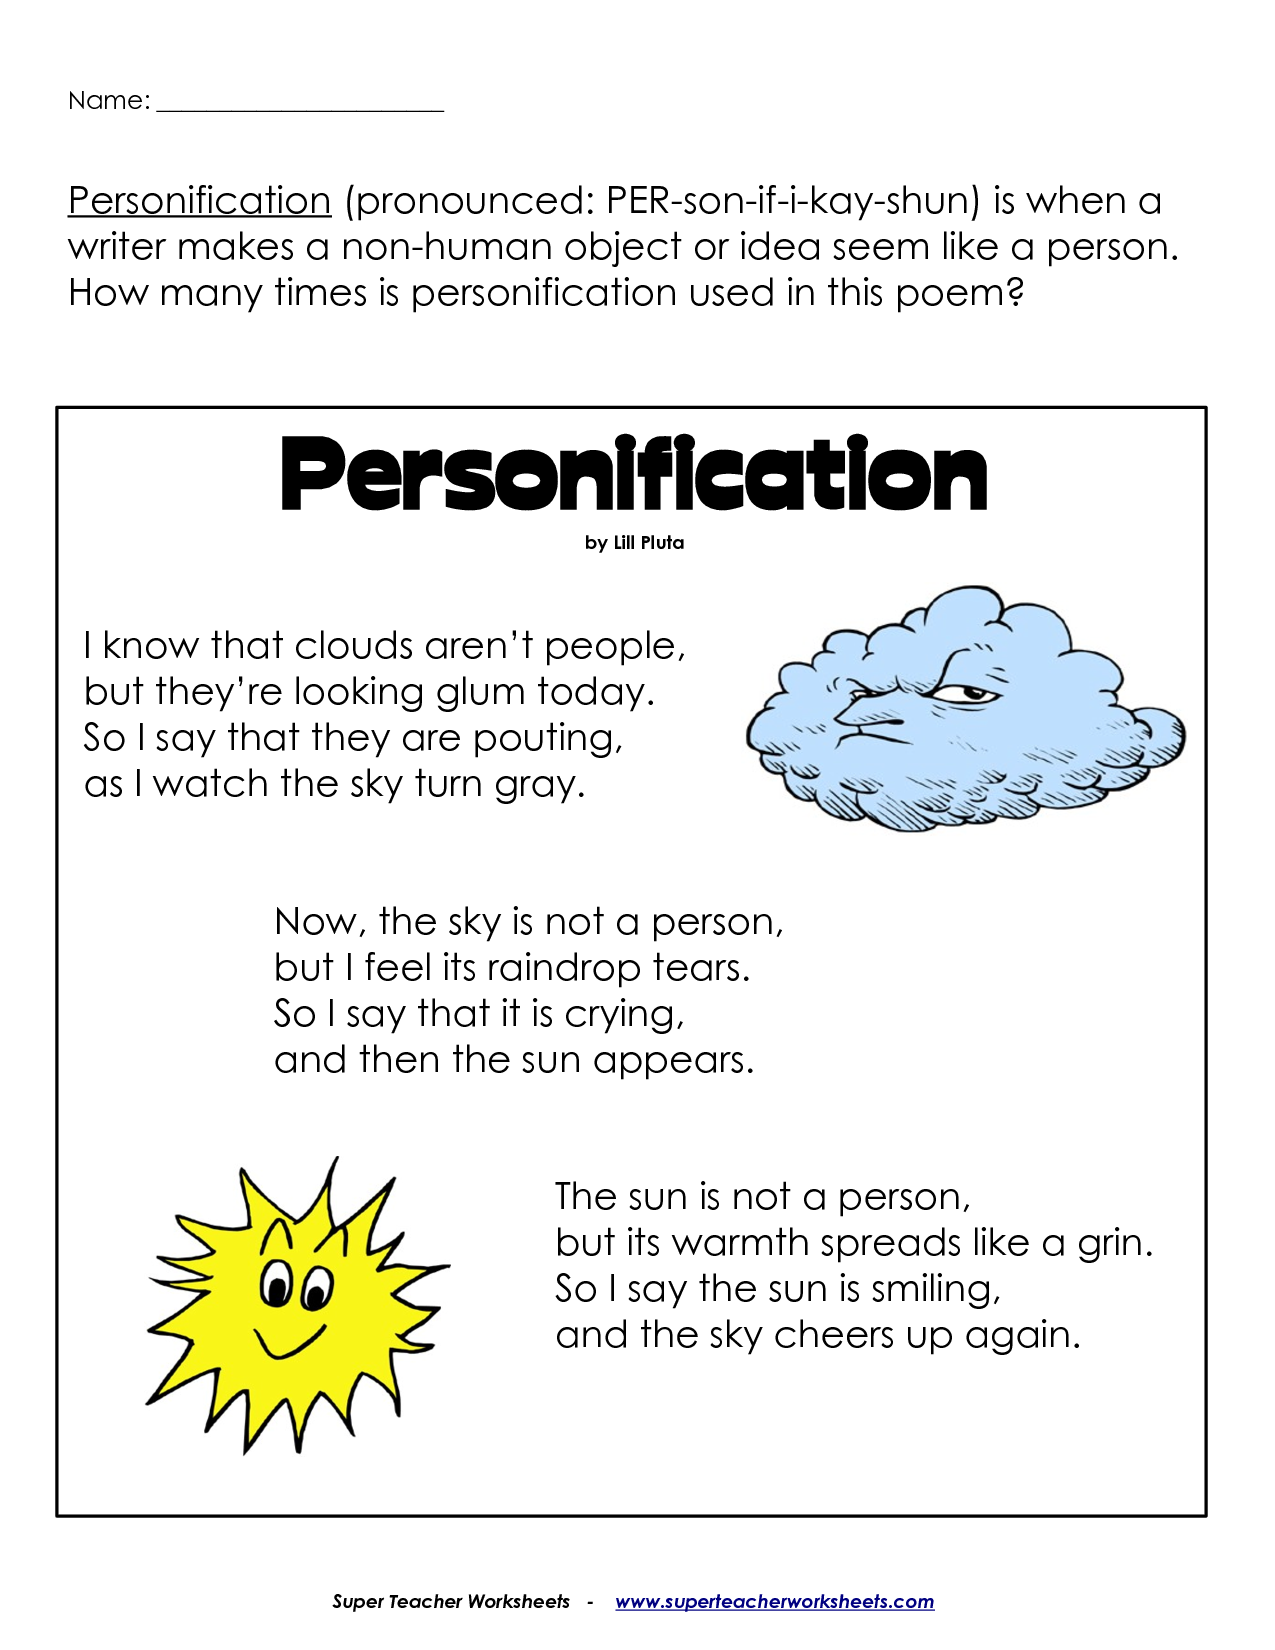 worksheet on personification pdf classroom language arts worksheet on personification pdf